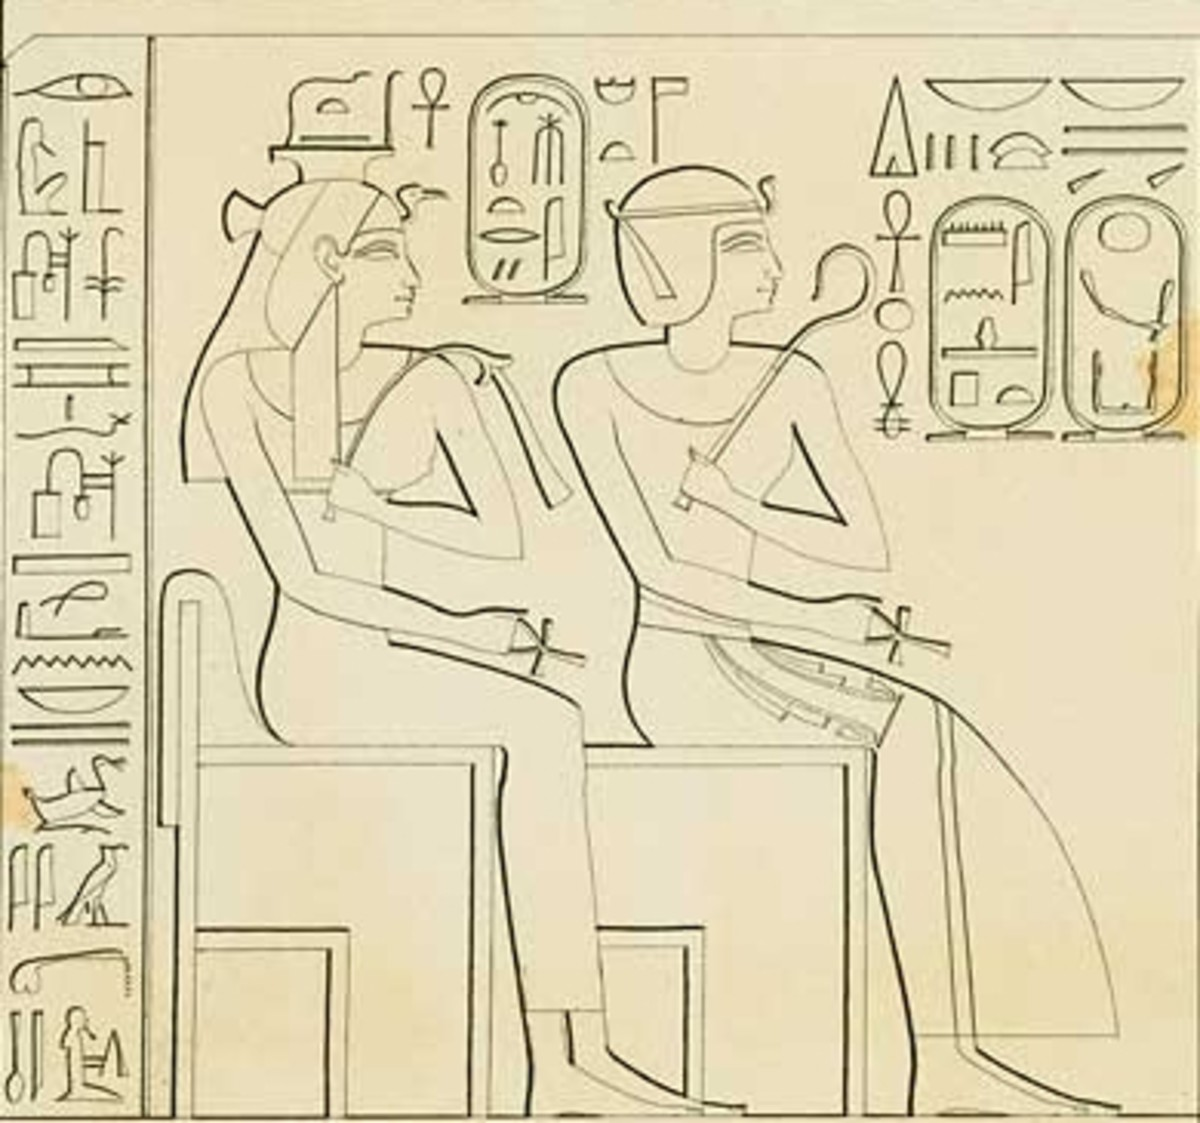 Ahmose-Nefertari and Amenhotep I